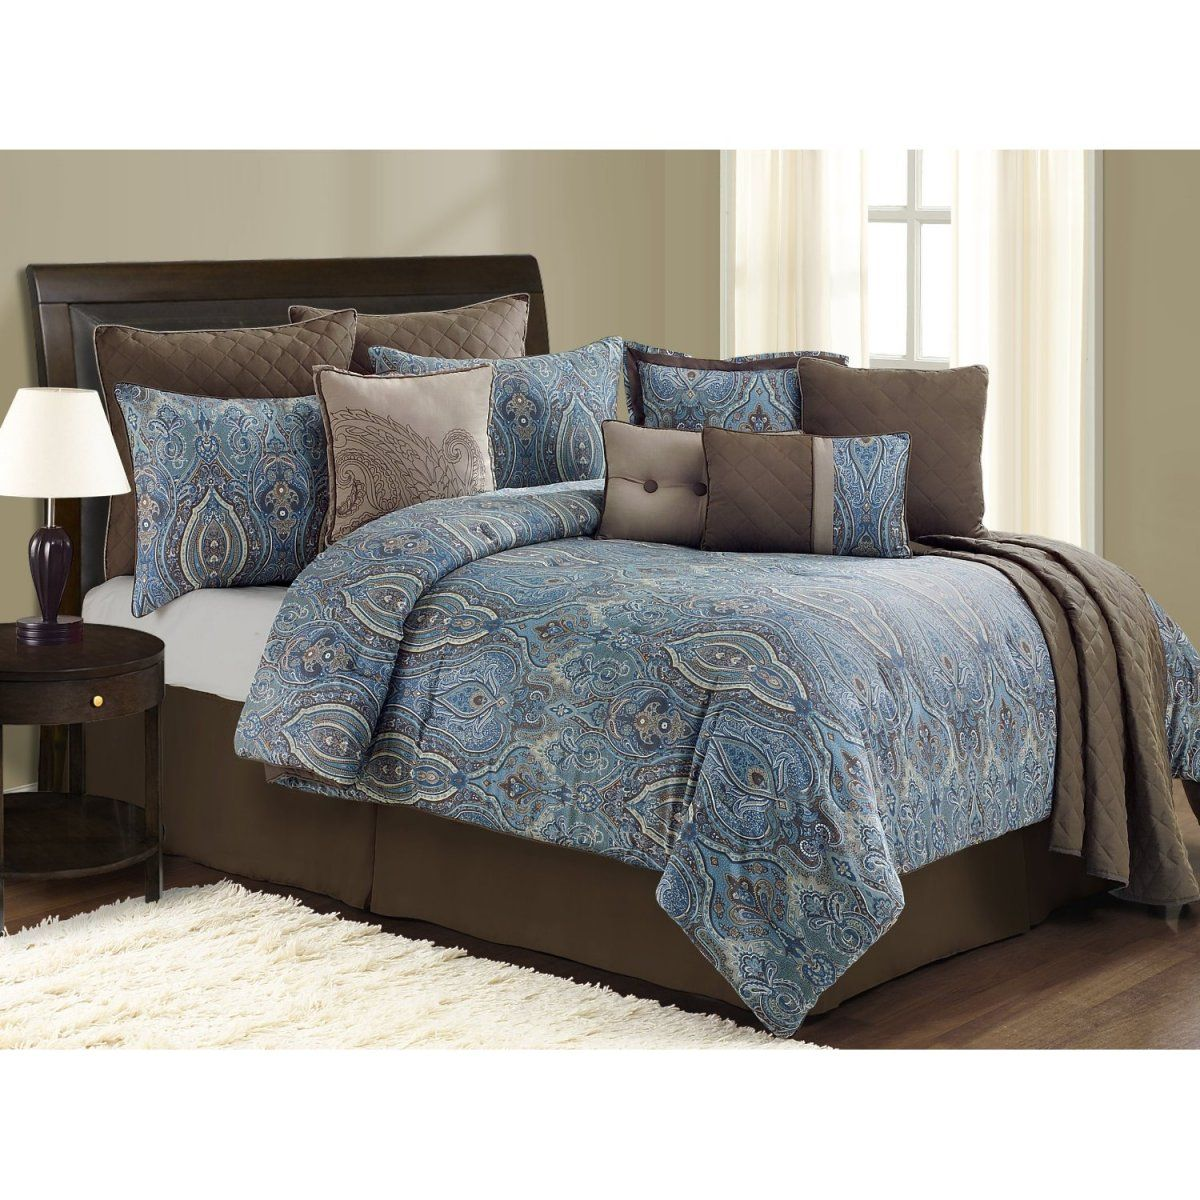 Blue And Brown Floral Damask King Bedspread With 100 Cotton Comforter Sets King Size And Solid Brown Diamond Pattern Home Comforter Sets Brown Comforter Sets